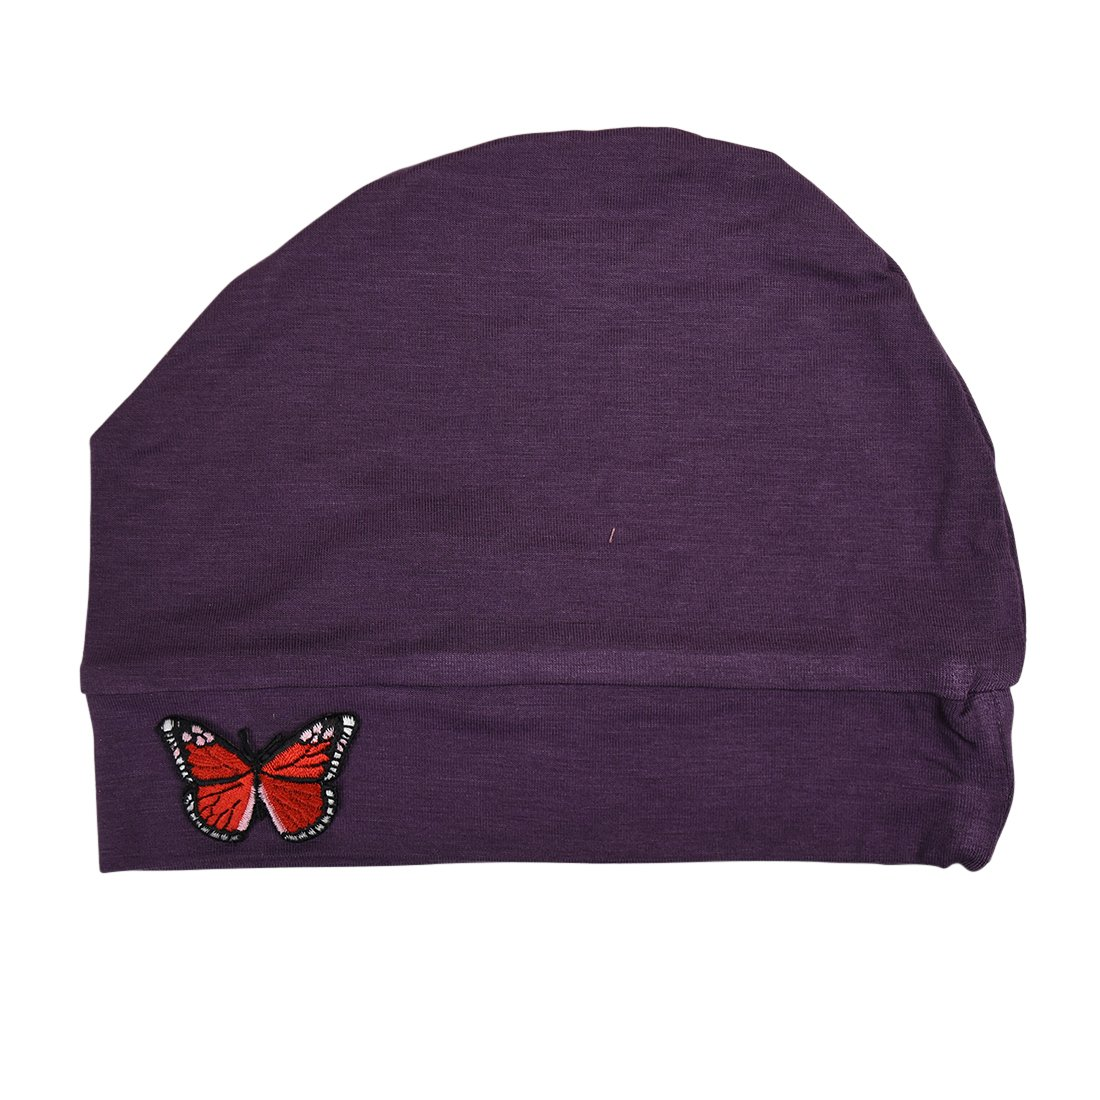 Womens Soft Chemo Cap and Sleep Turban with Red Butterfly